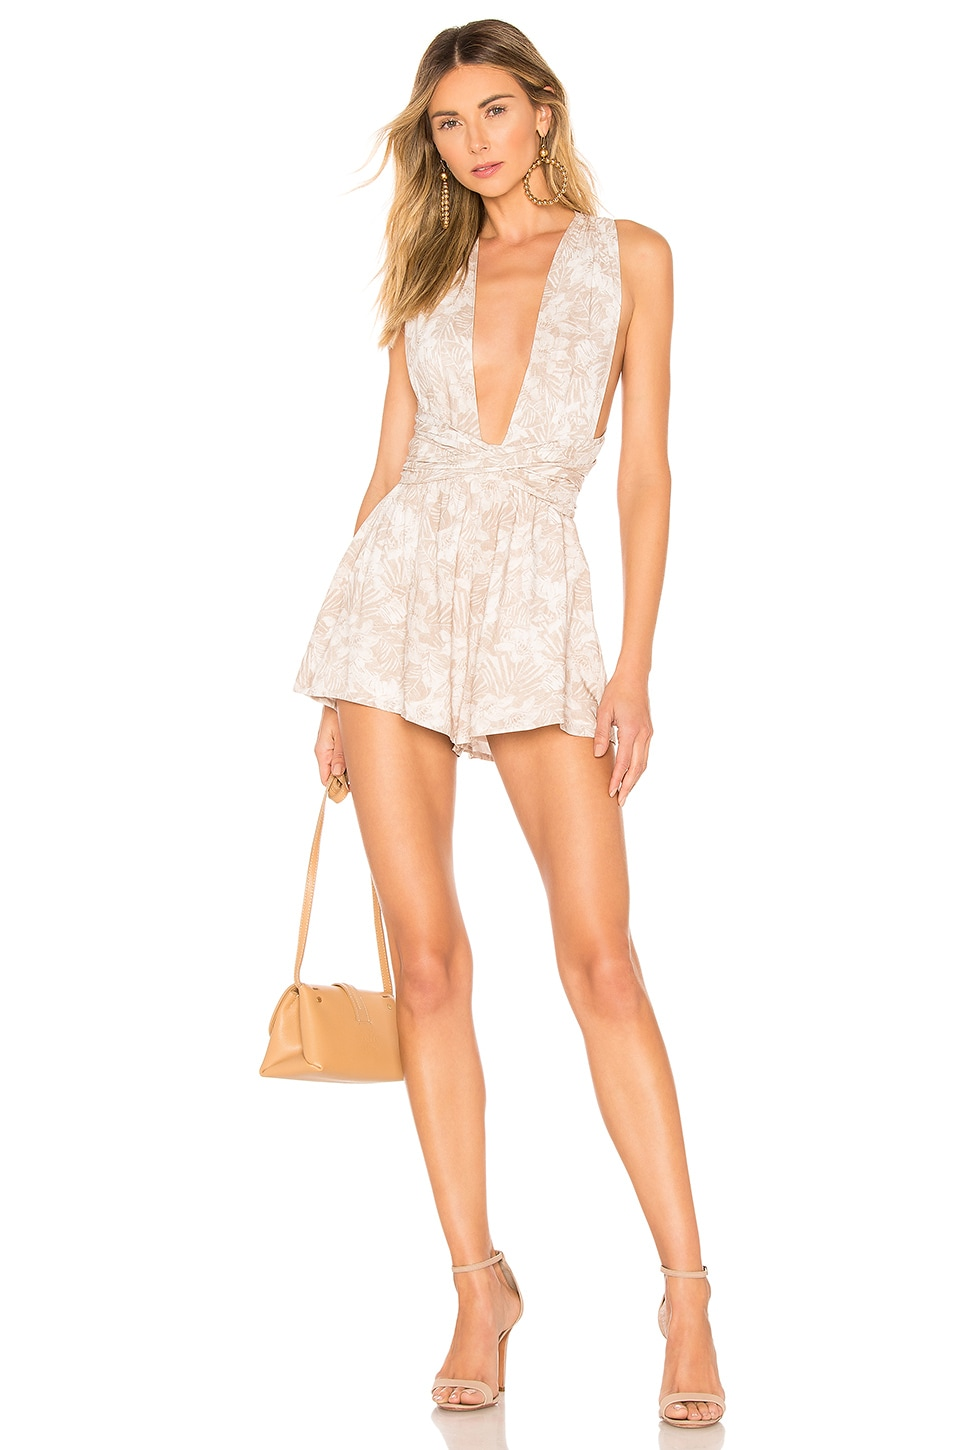 MAJORELLE Callie Romper in Tropical Tan